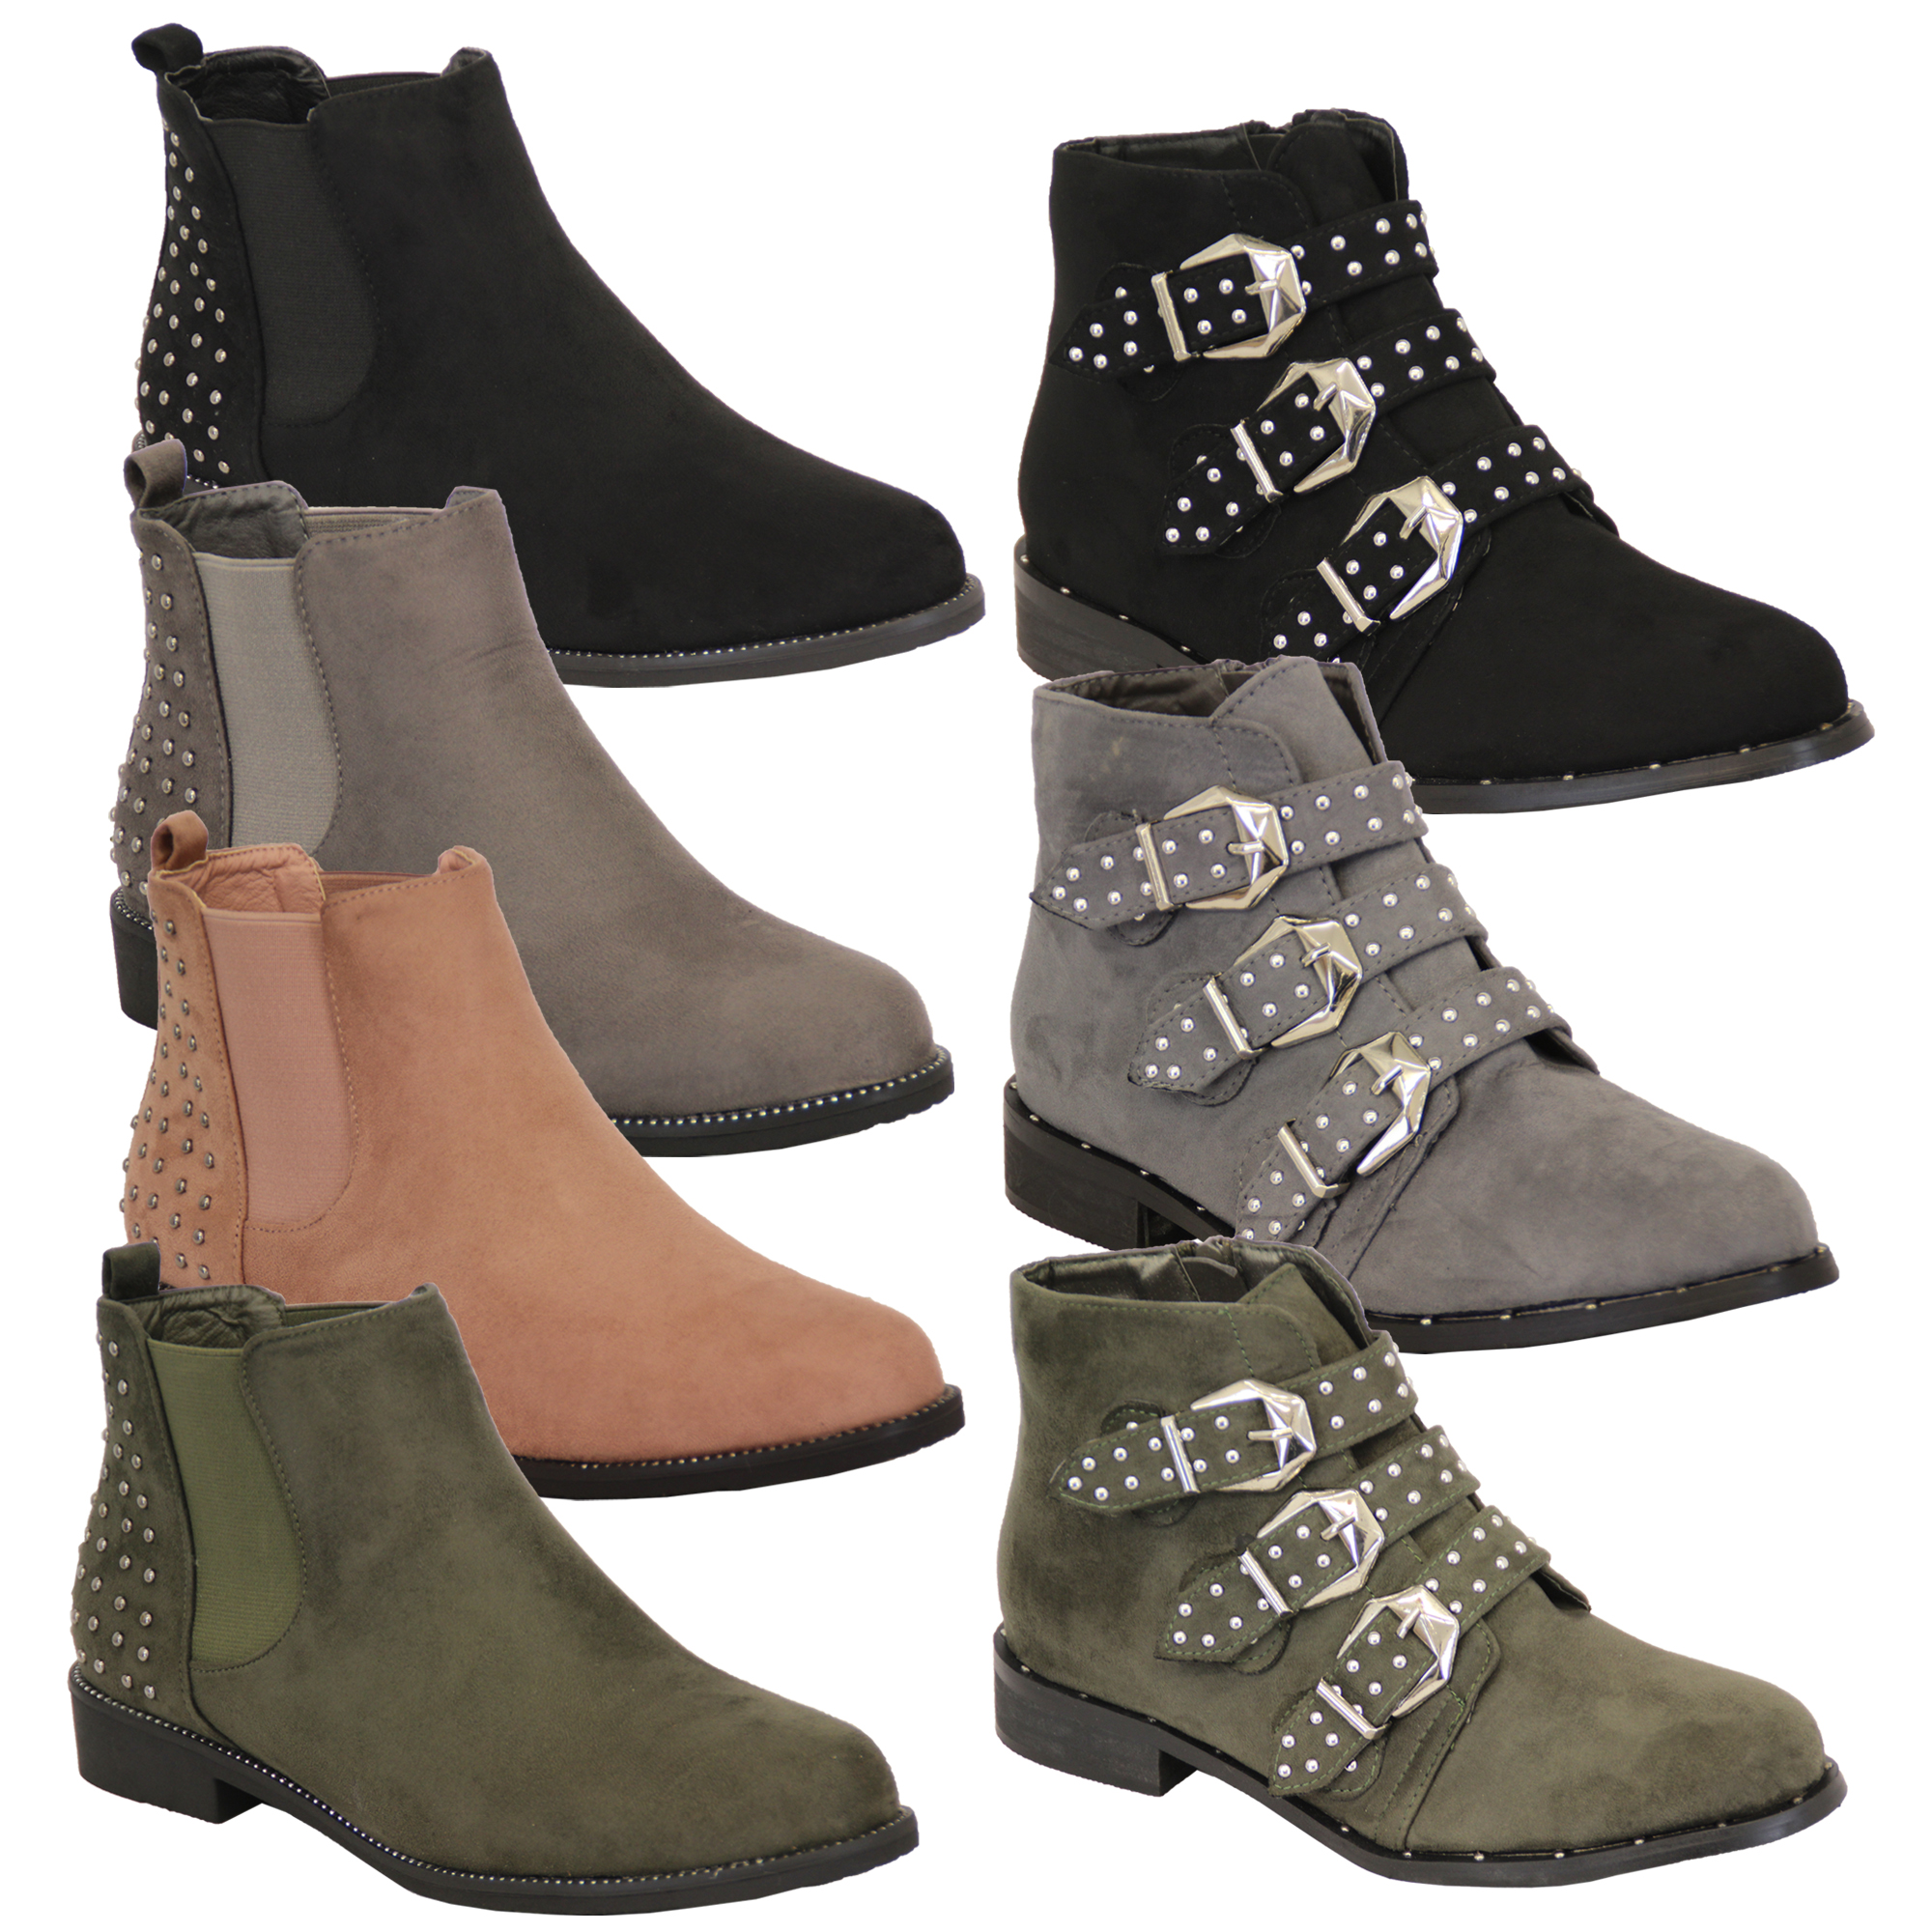 Ladies-Chelsea-Biker-Boots-Womens-Suede-Look-Studded-High-Ankle-Zip-Buckle-Shoes thumbnail 26